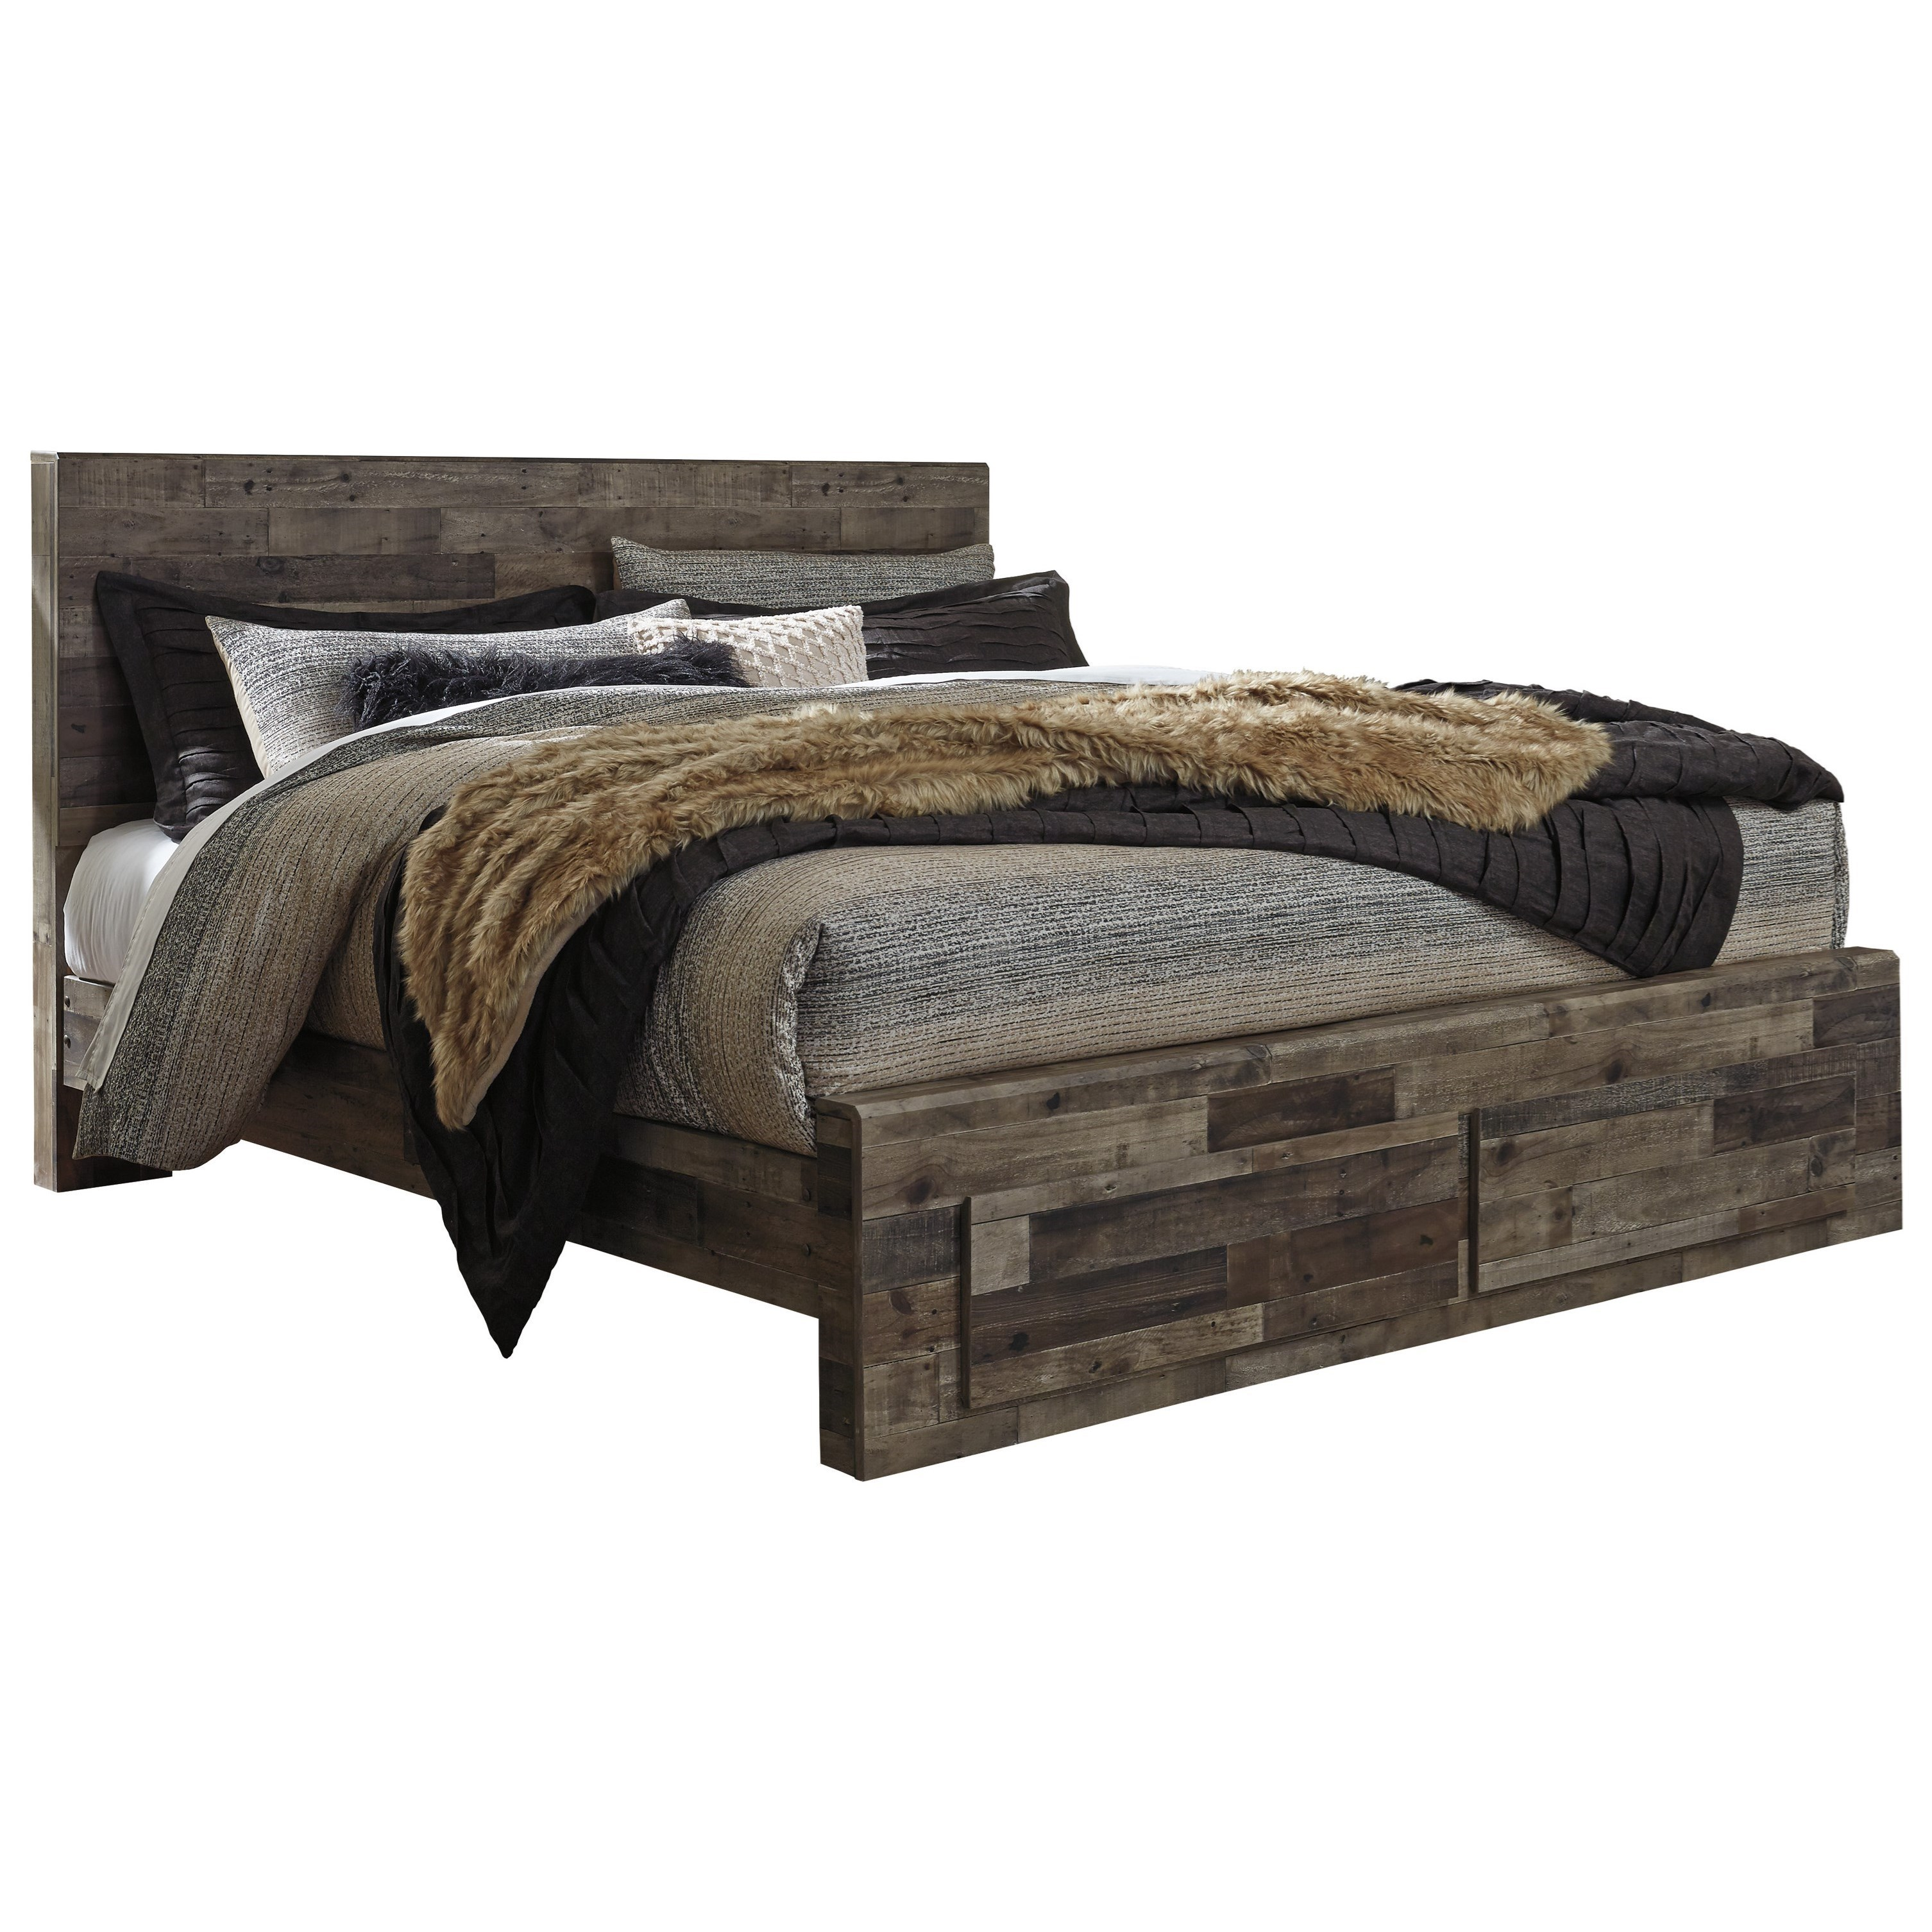 Rustic Modern King Storage Bed with 2 Footboard Drawers